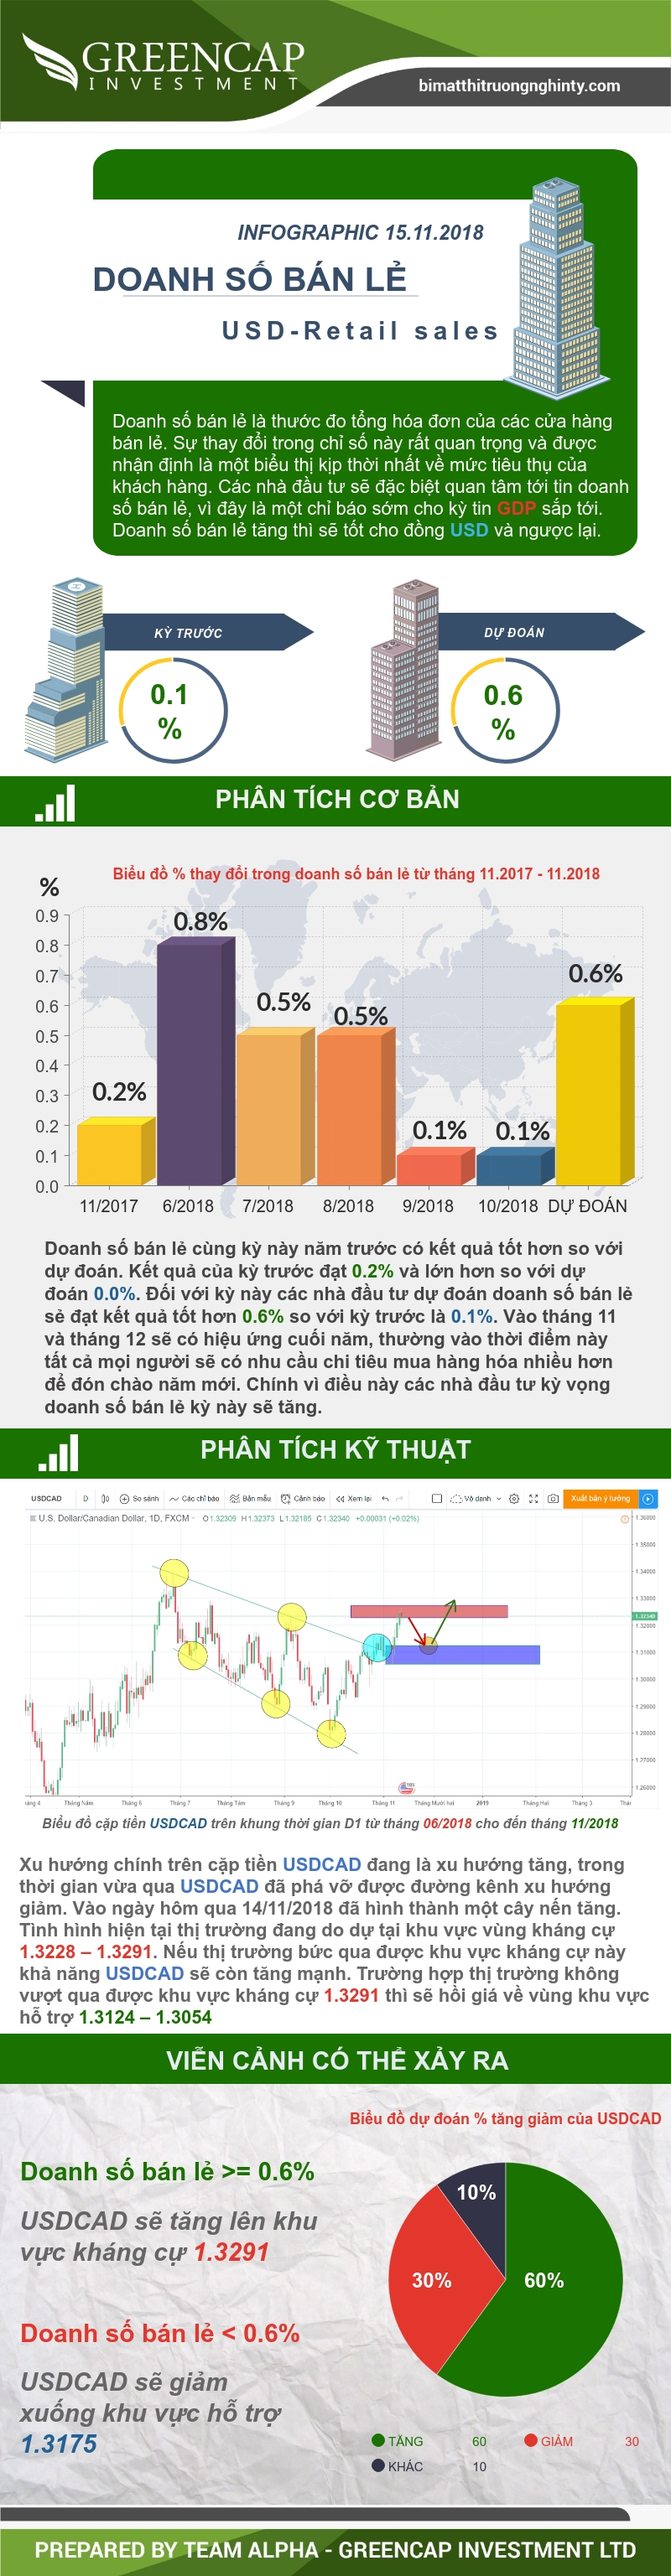 Infographic doanh số bán lẻ 15/11/2018